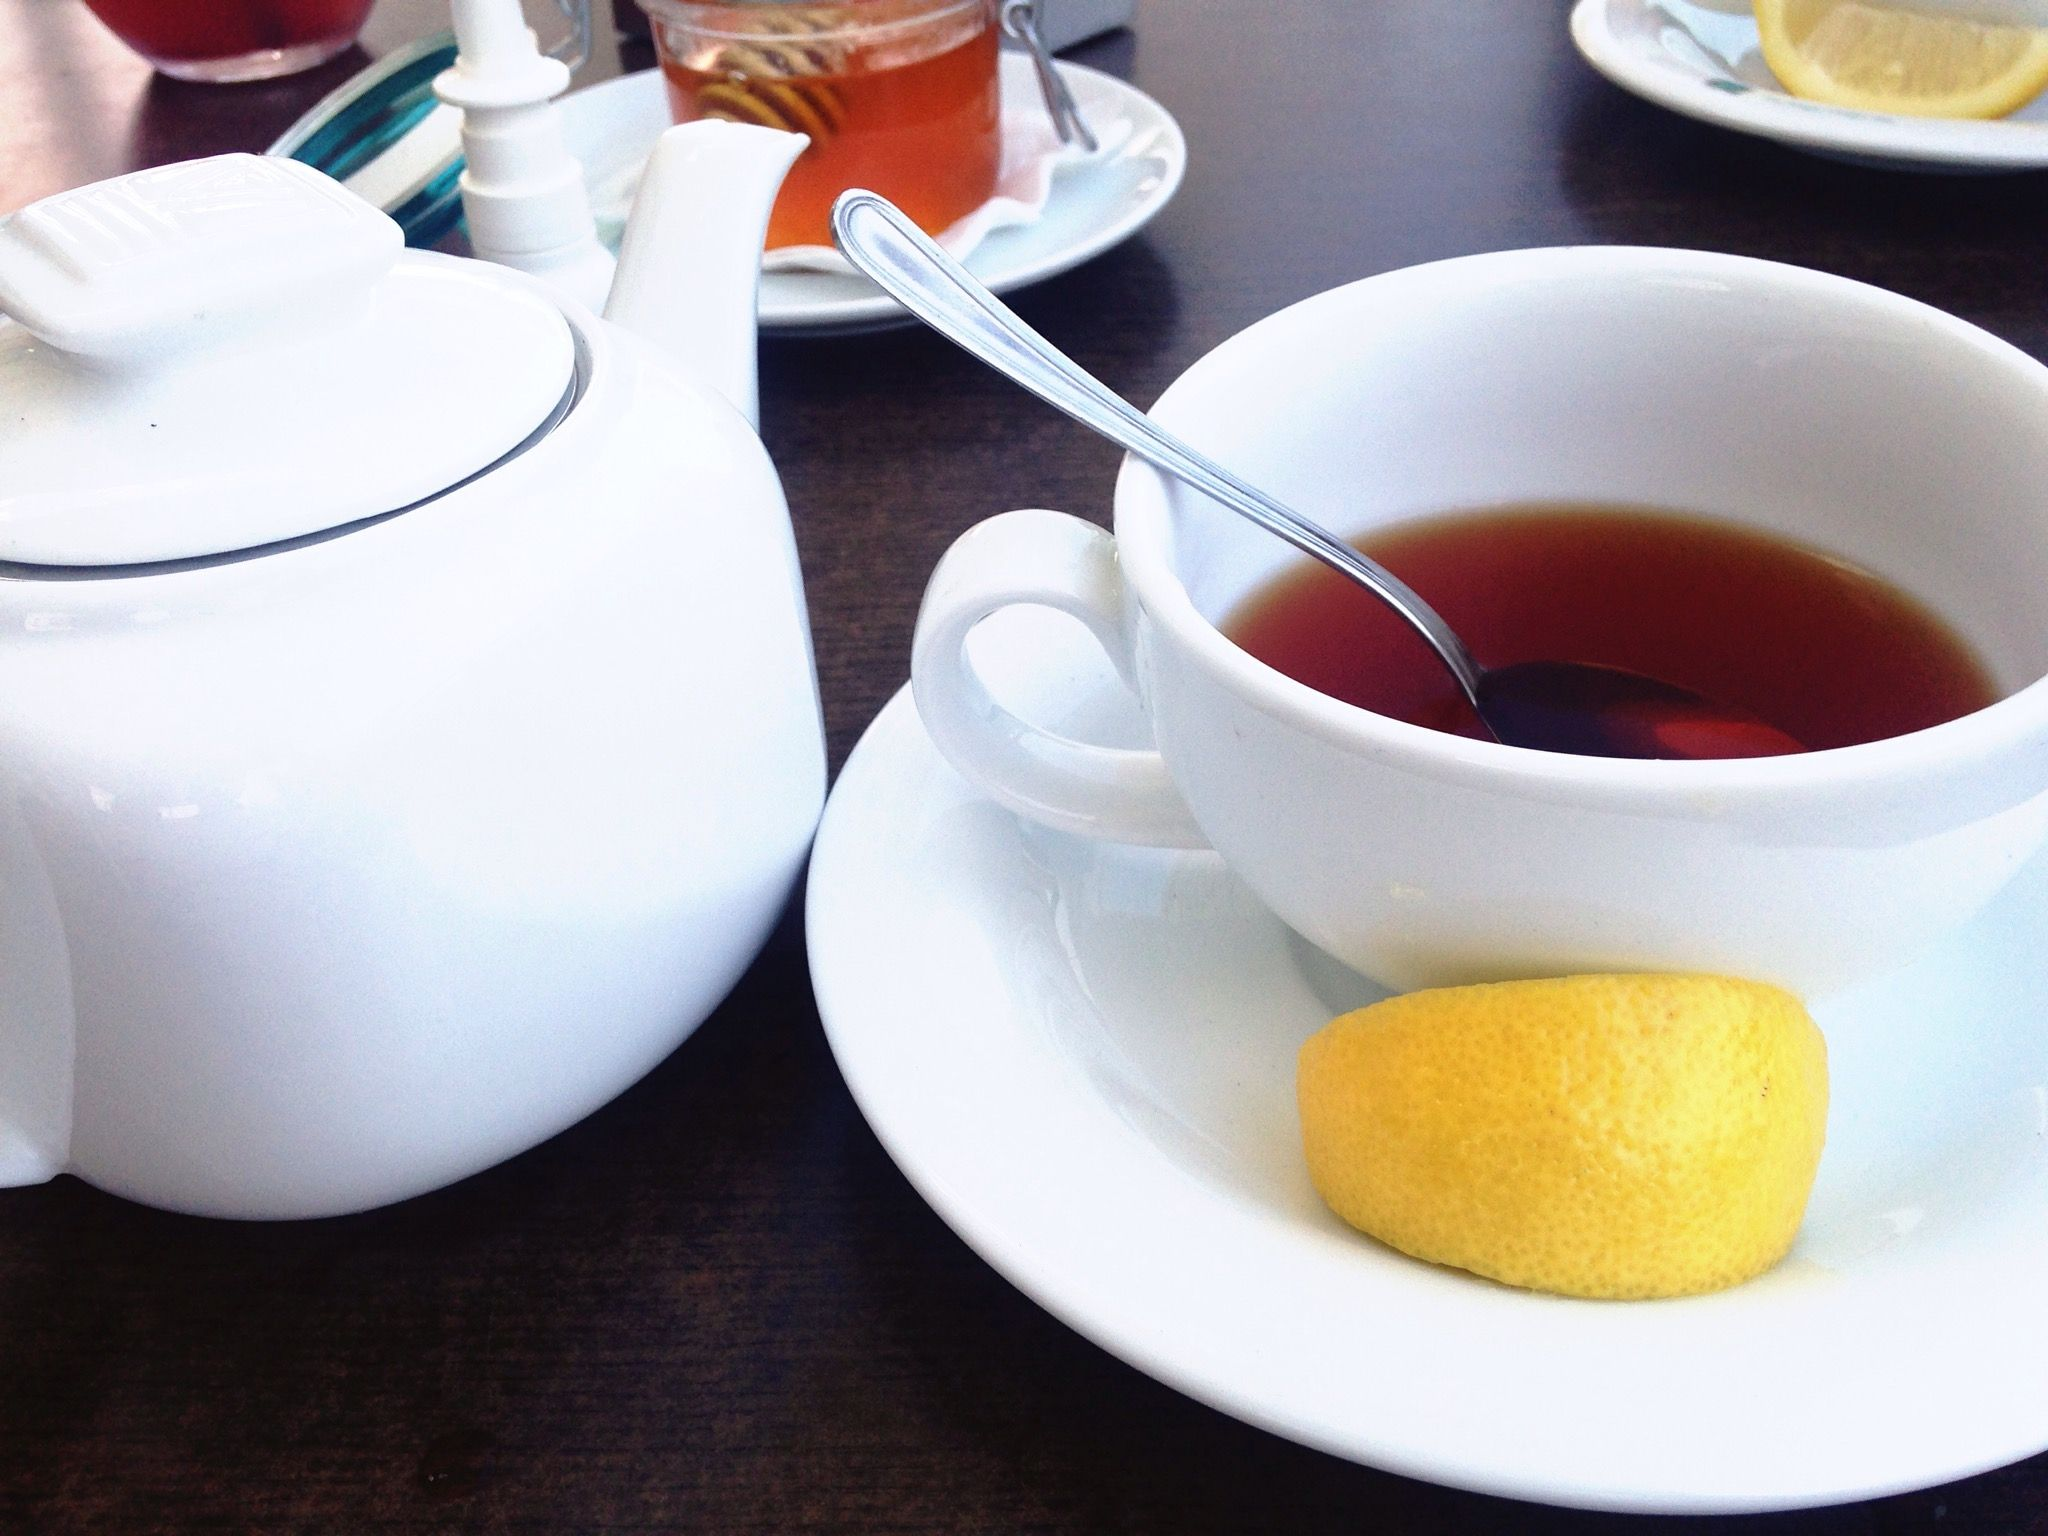 Close-Up Of Tea On Table